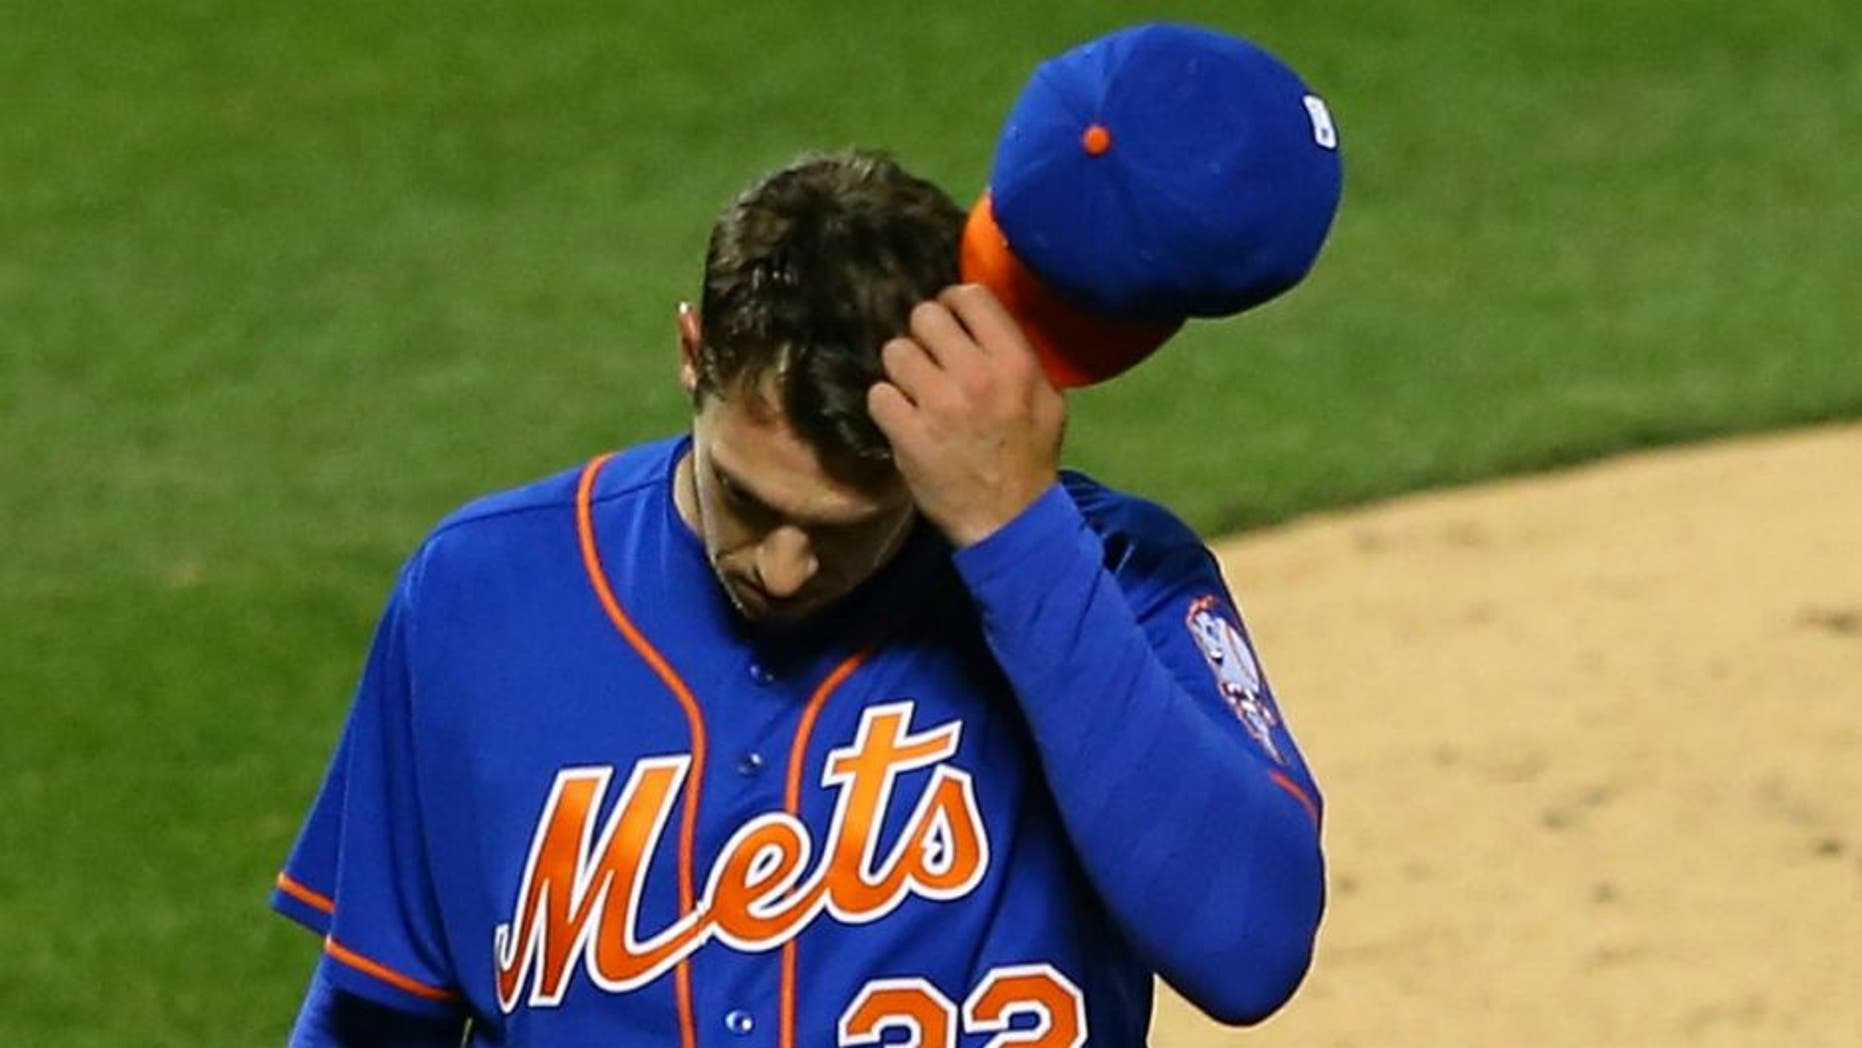 NEW YORK, NEW YORK - APRIL 11: Steven Matz #32 of the New York Mets walks off the mound after giving up 7-runs in the second inning against the Miami Marlins at Citi Field on April 11, 2016 in the Flushing neighborhood of the Queens borough of New York City. (Photo by Mike Stobe/Getty Images)